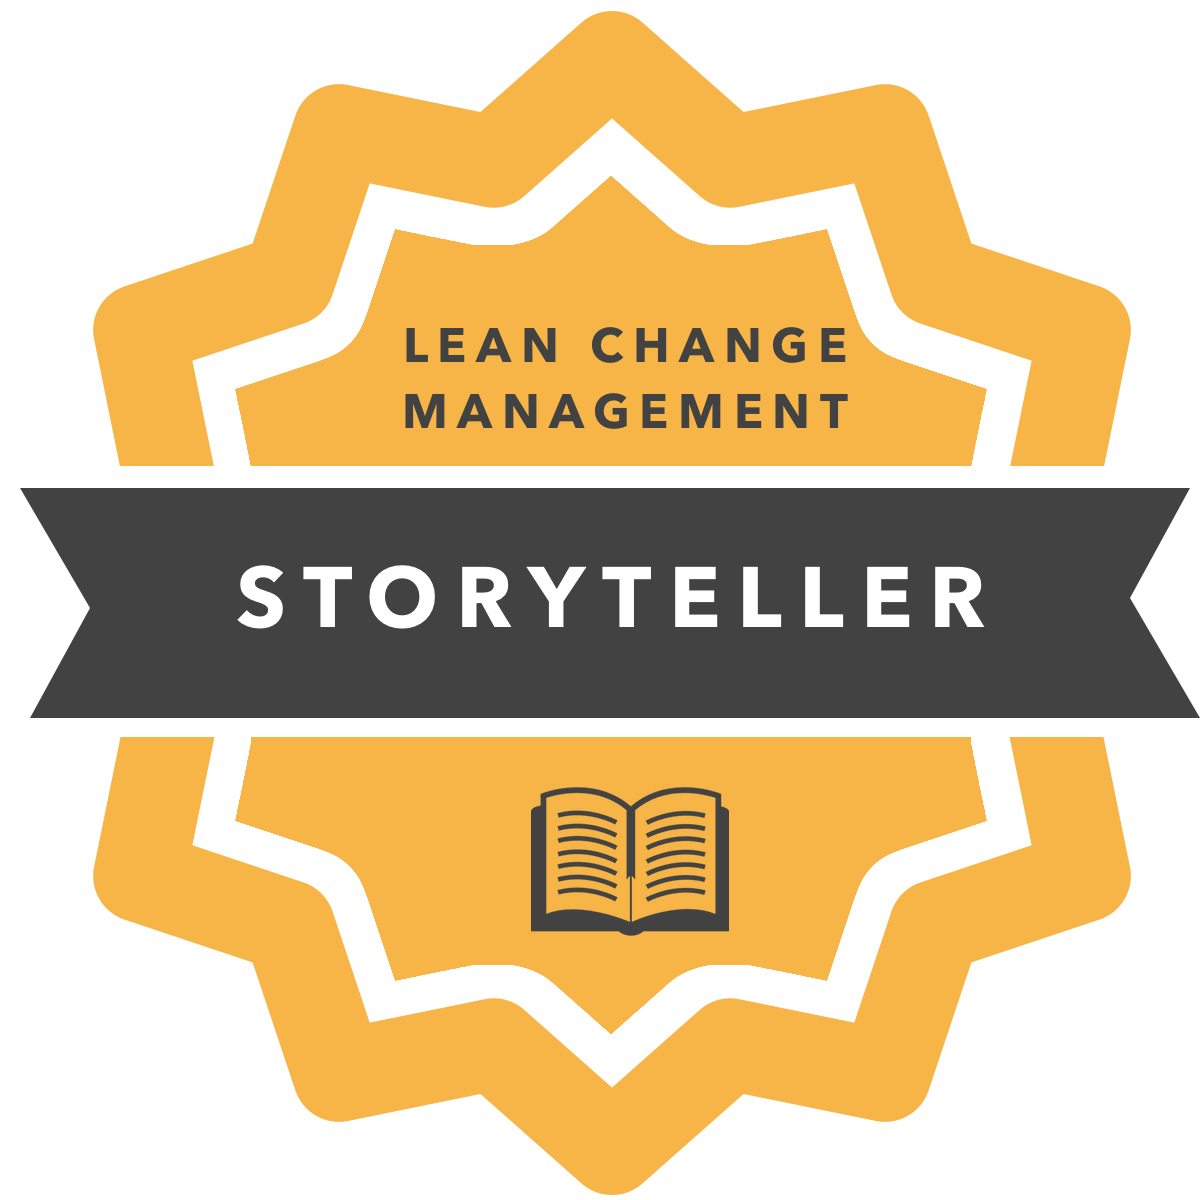 Lean Change Management Storyteller